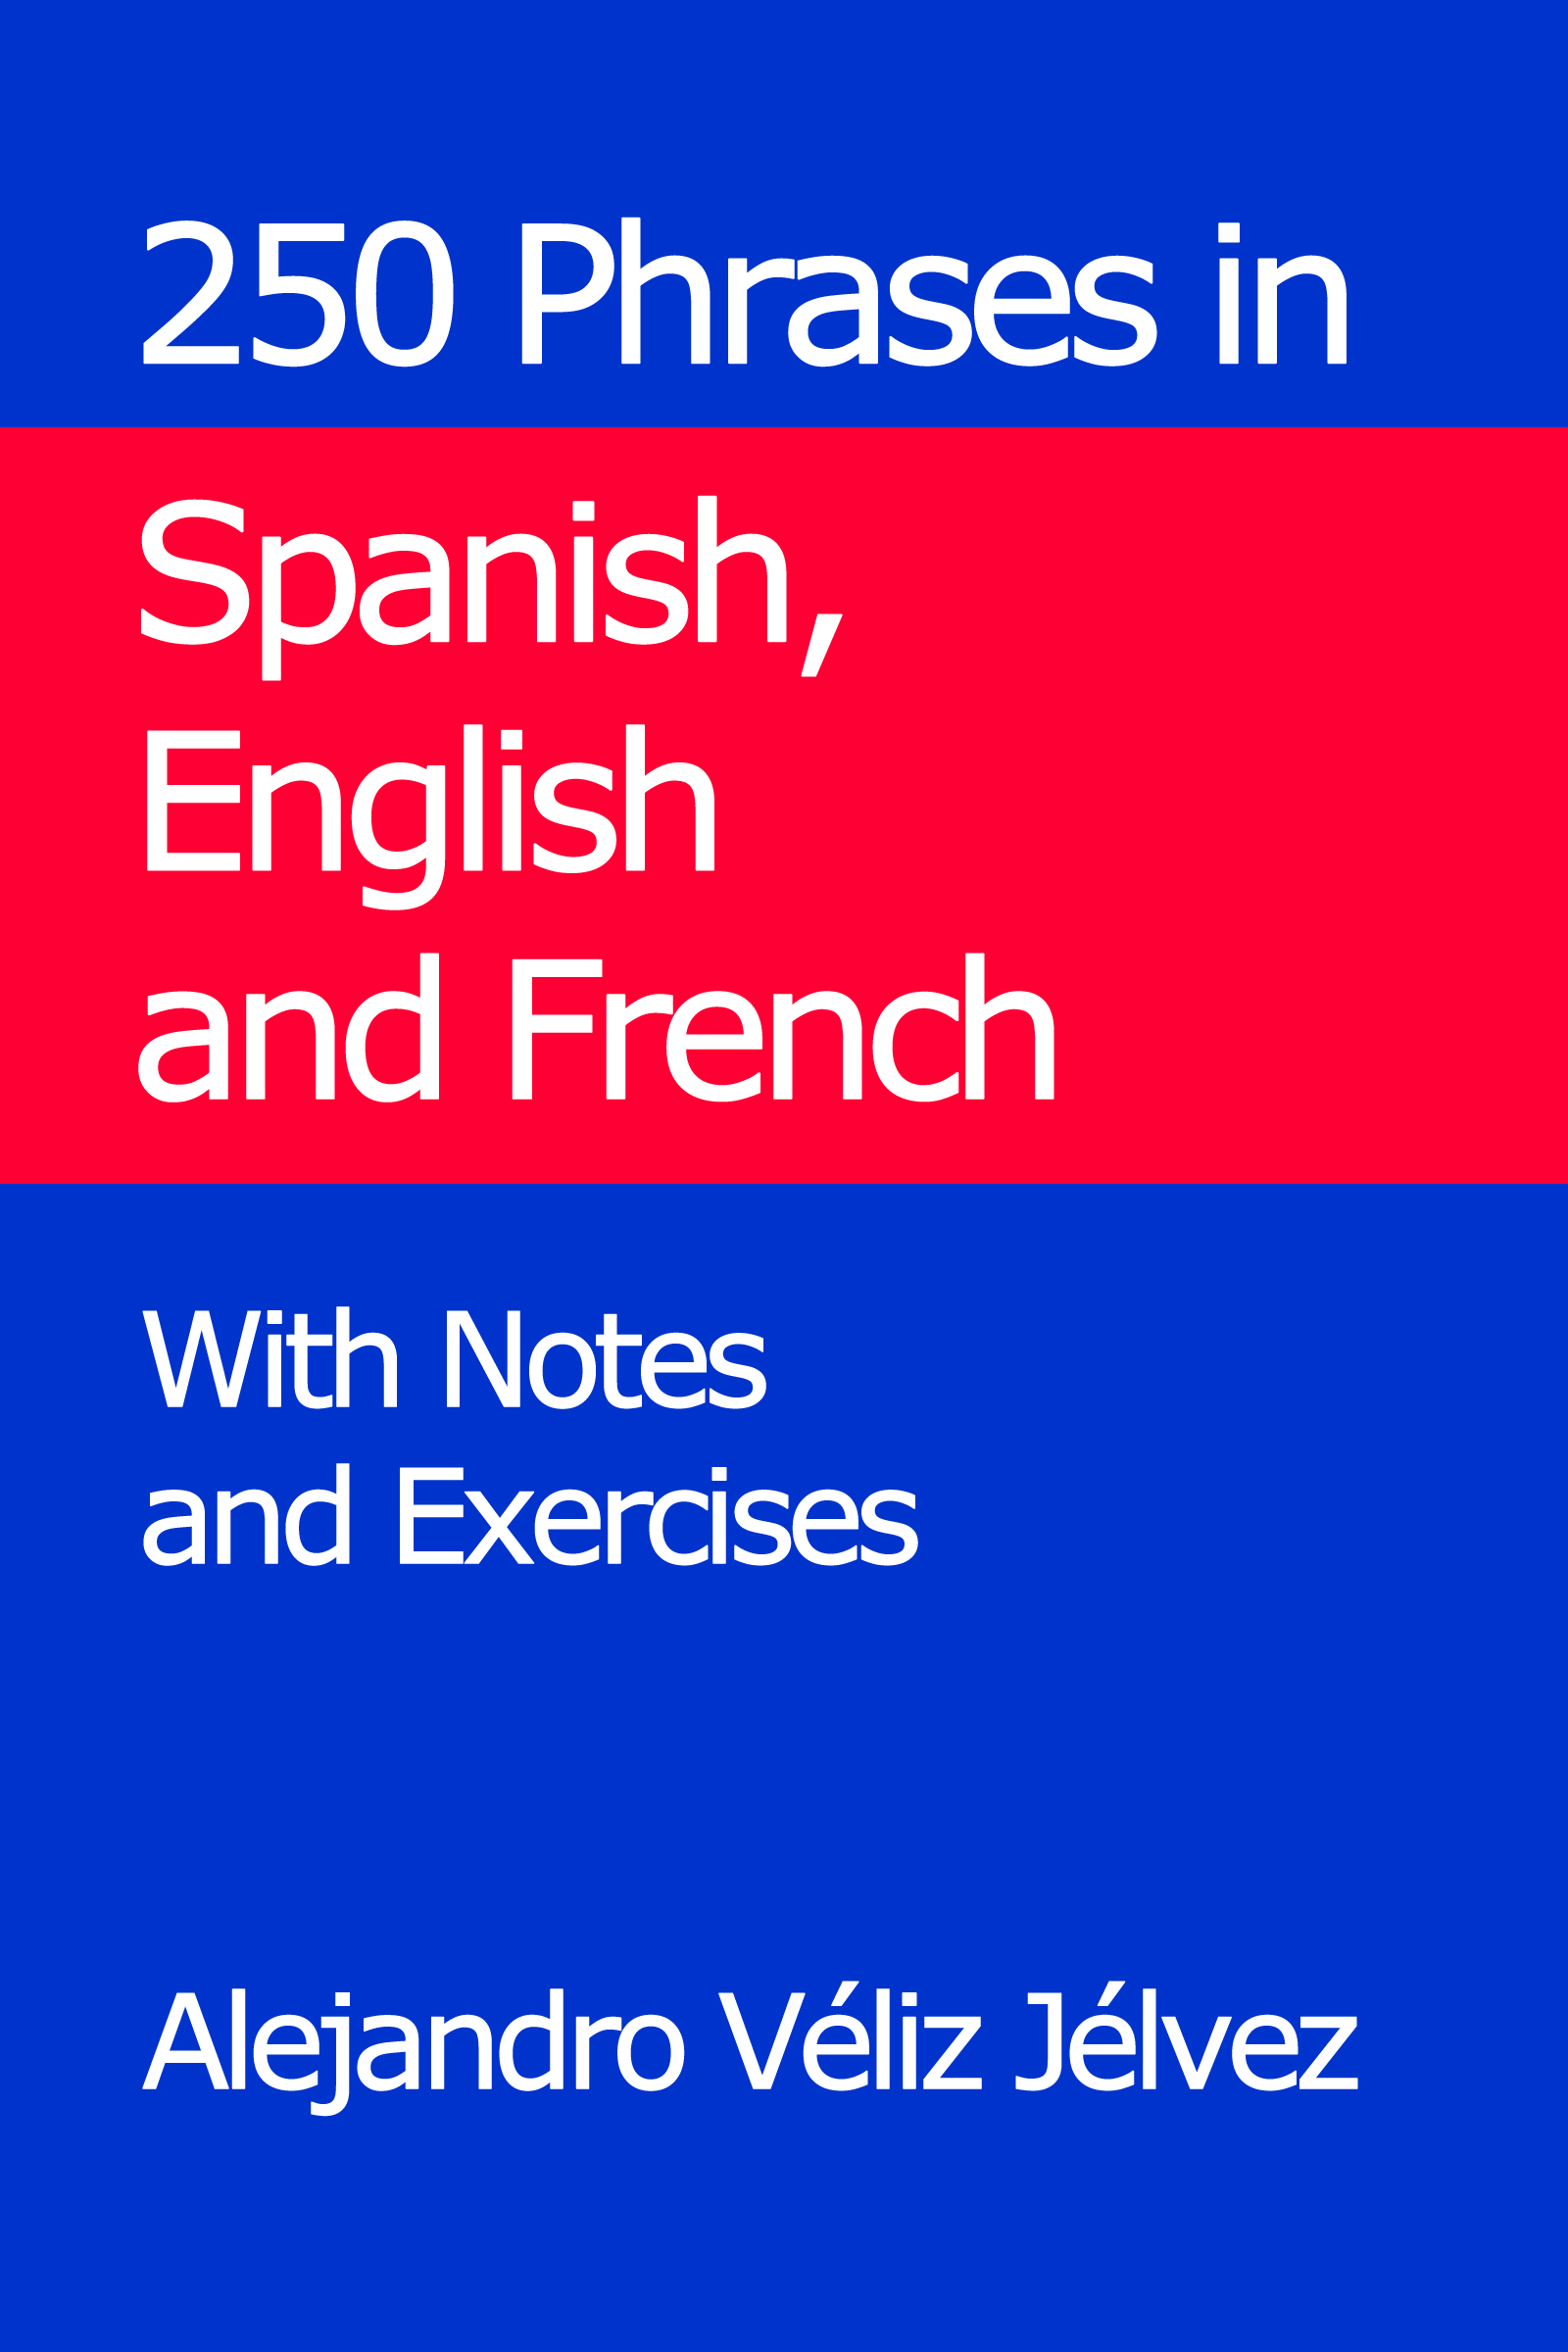 250 Phrases in Spanish, English and French  With Notes and Exercises, an  Ebook by Alejandro Véliz Jélvez